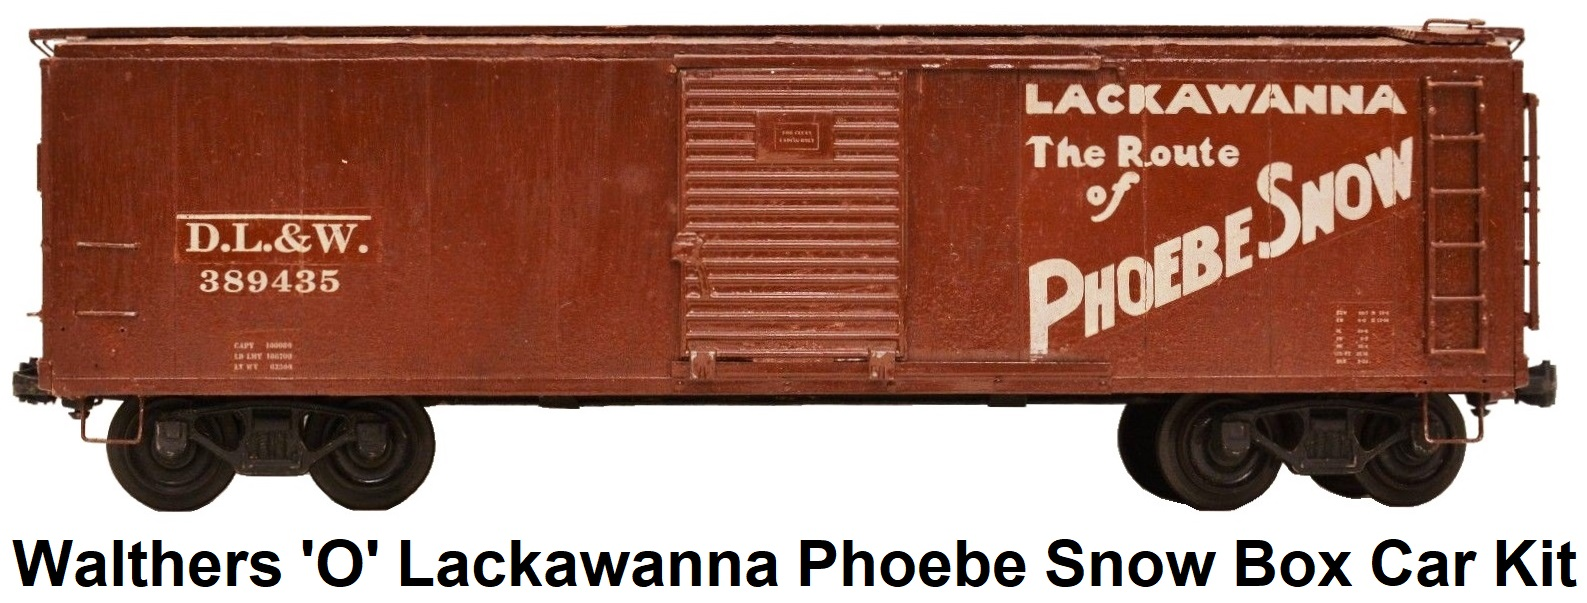 Walthers 'O' Scale Lackawanna Phoebe Snow Assembled Box Car Kit made of Wood and Metal